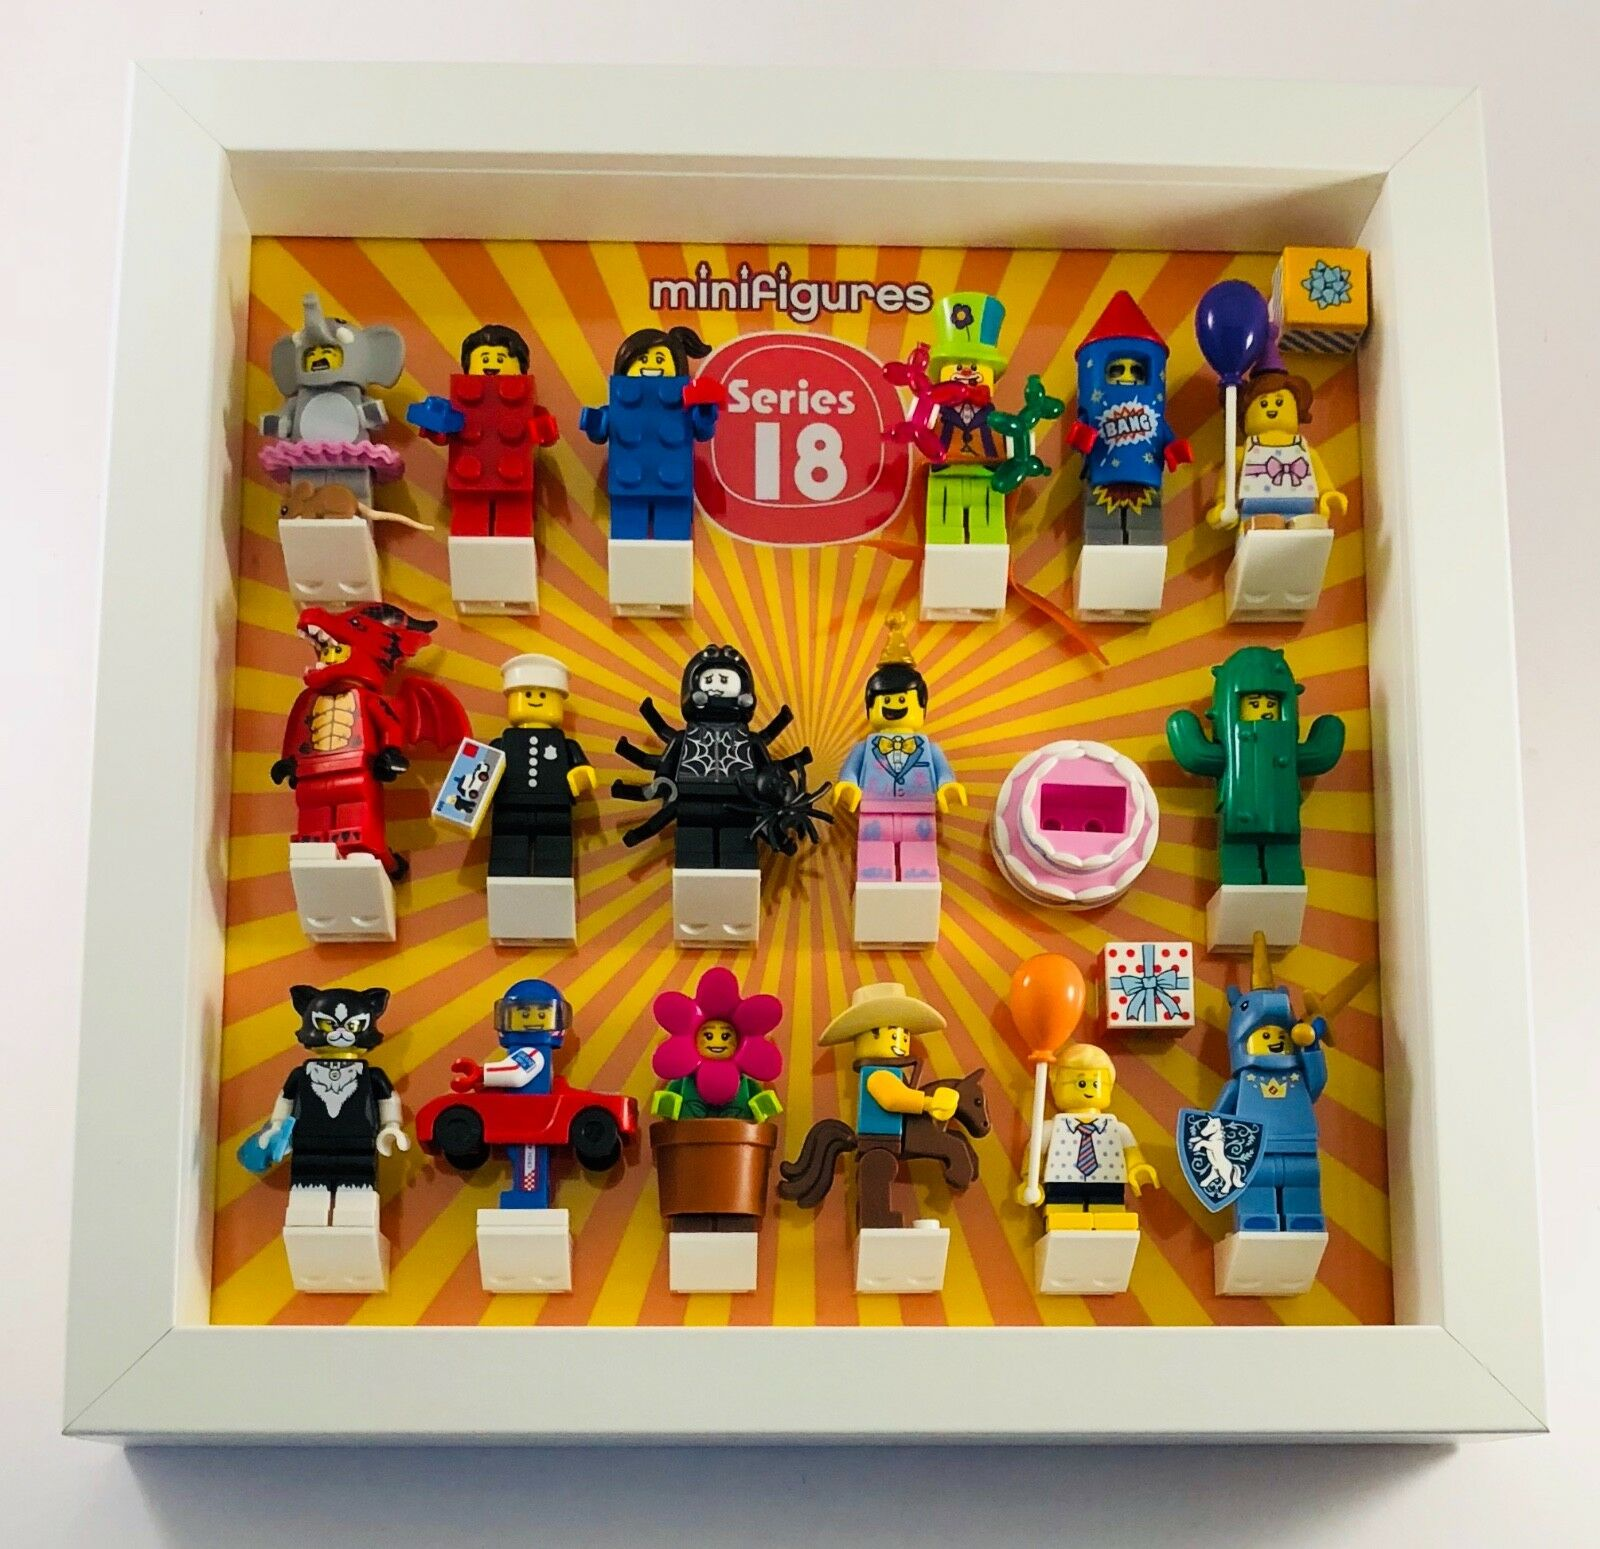 Lego Minifigures Display Case Frame Series 18 Minifigs figures 40 ...